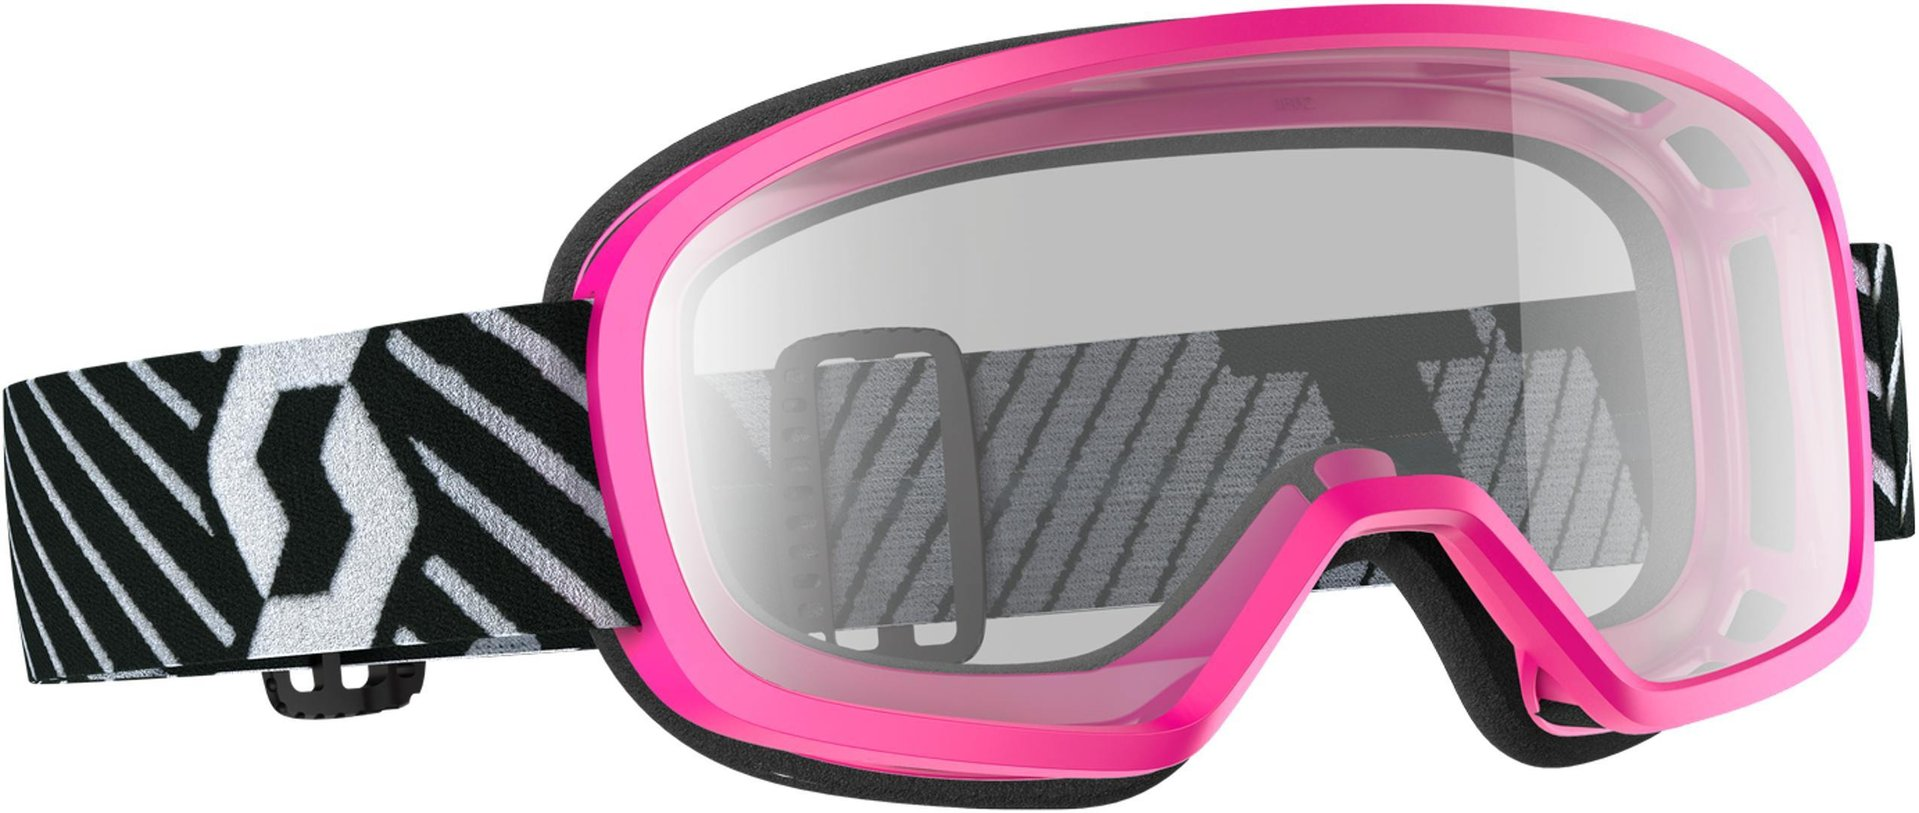 Scott Buzz Kids Motocross Goggles, pink, pink from Scott